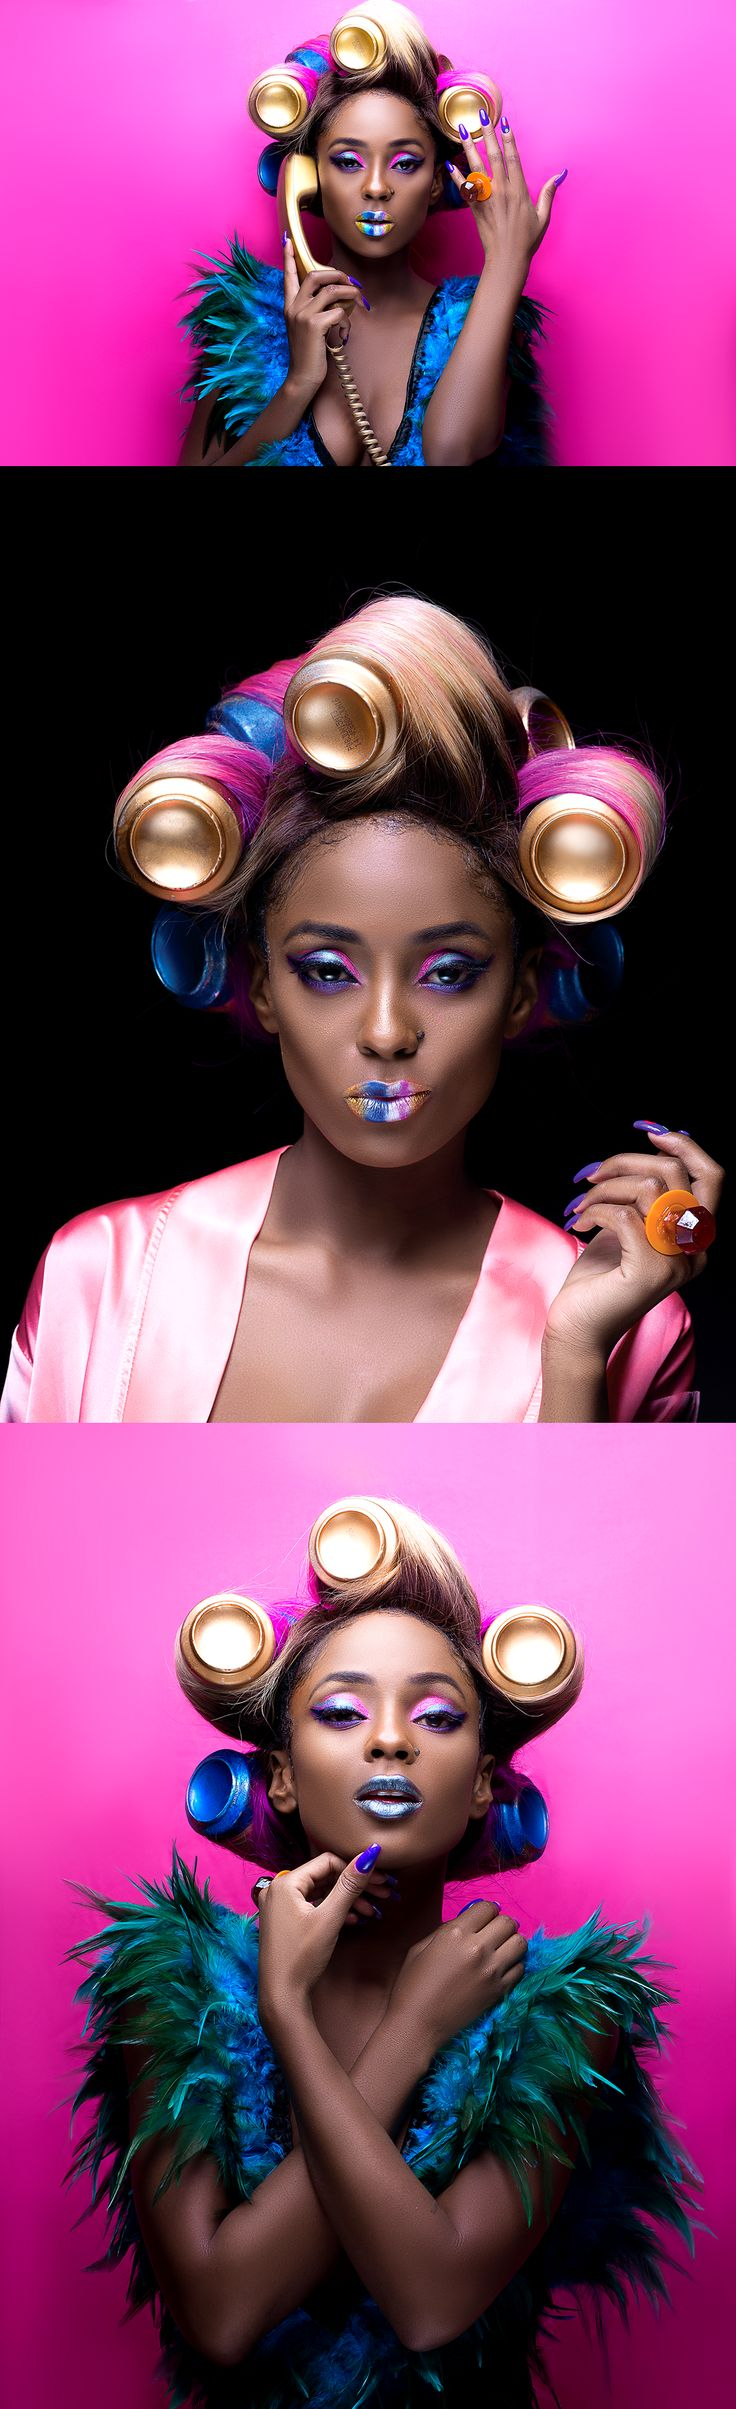 Exquisitely Exotic Style Makeup Ideas to Get Diva Looks